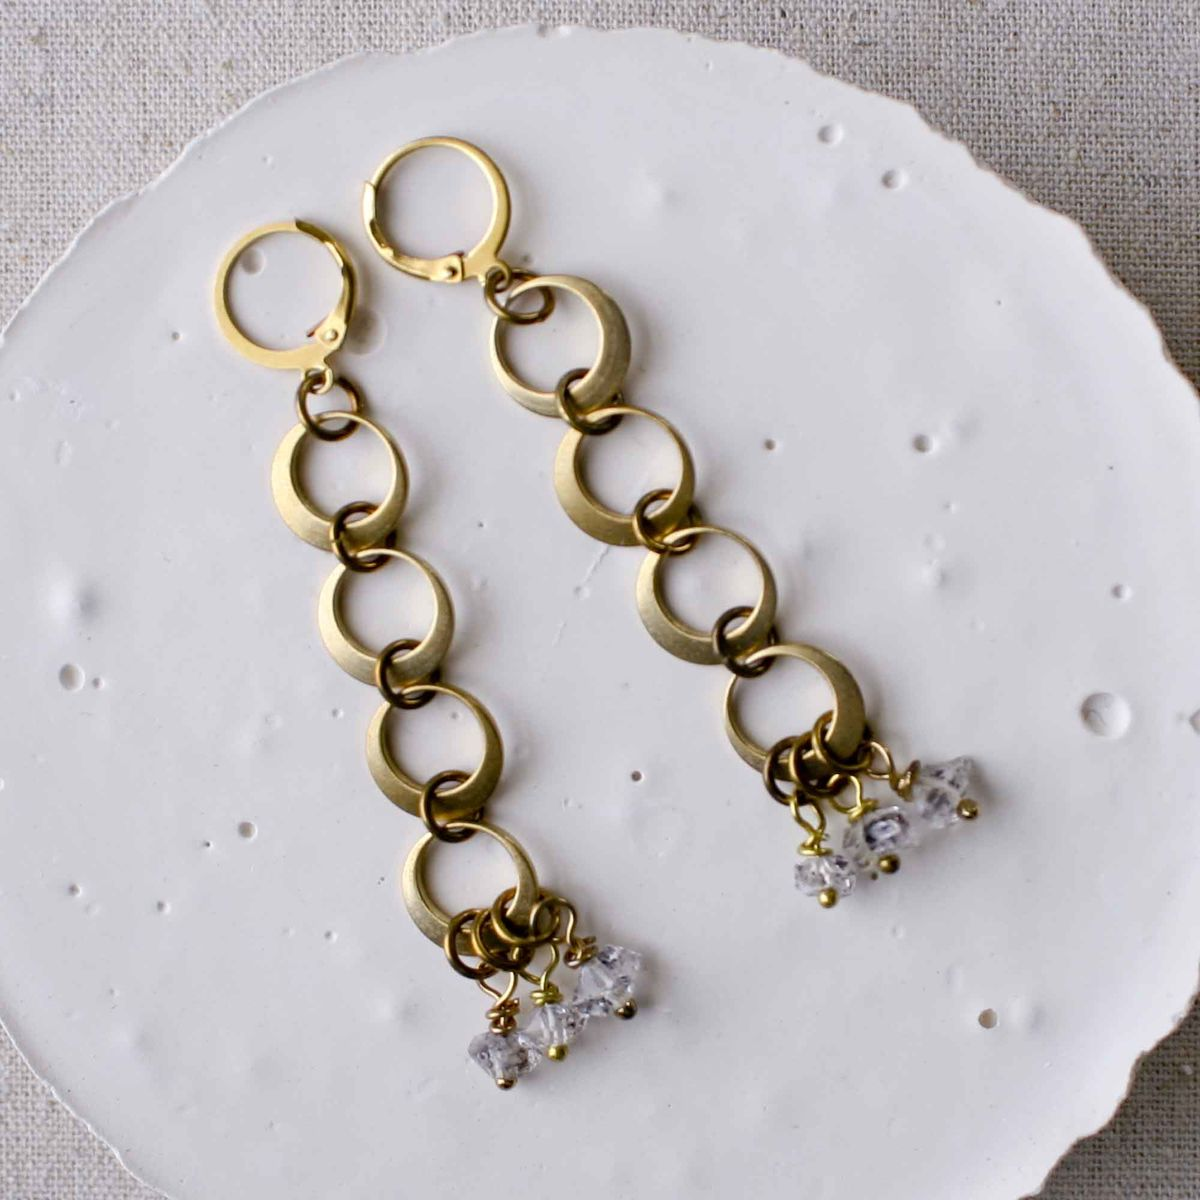 Herkimer and Links Earrings - product image